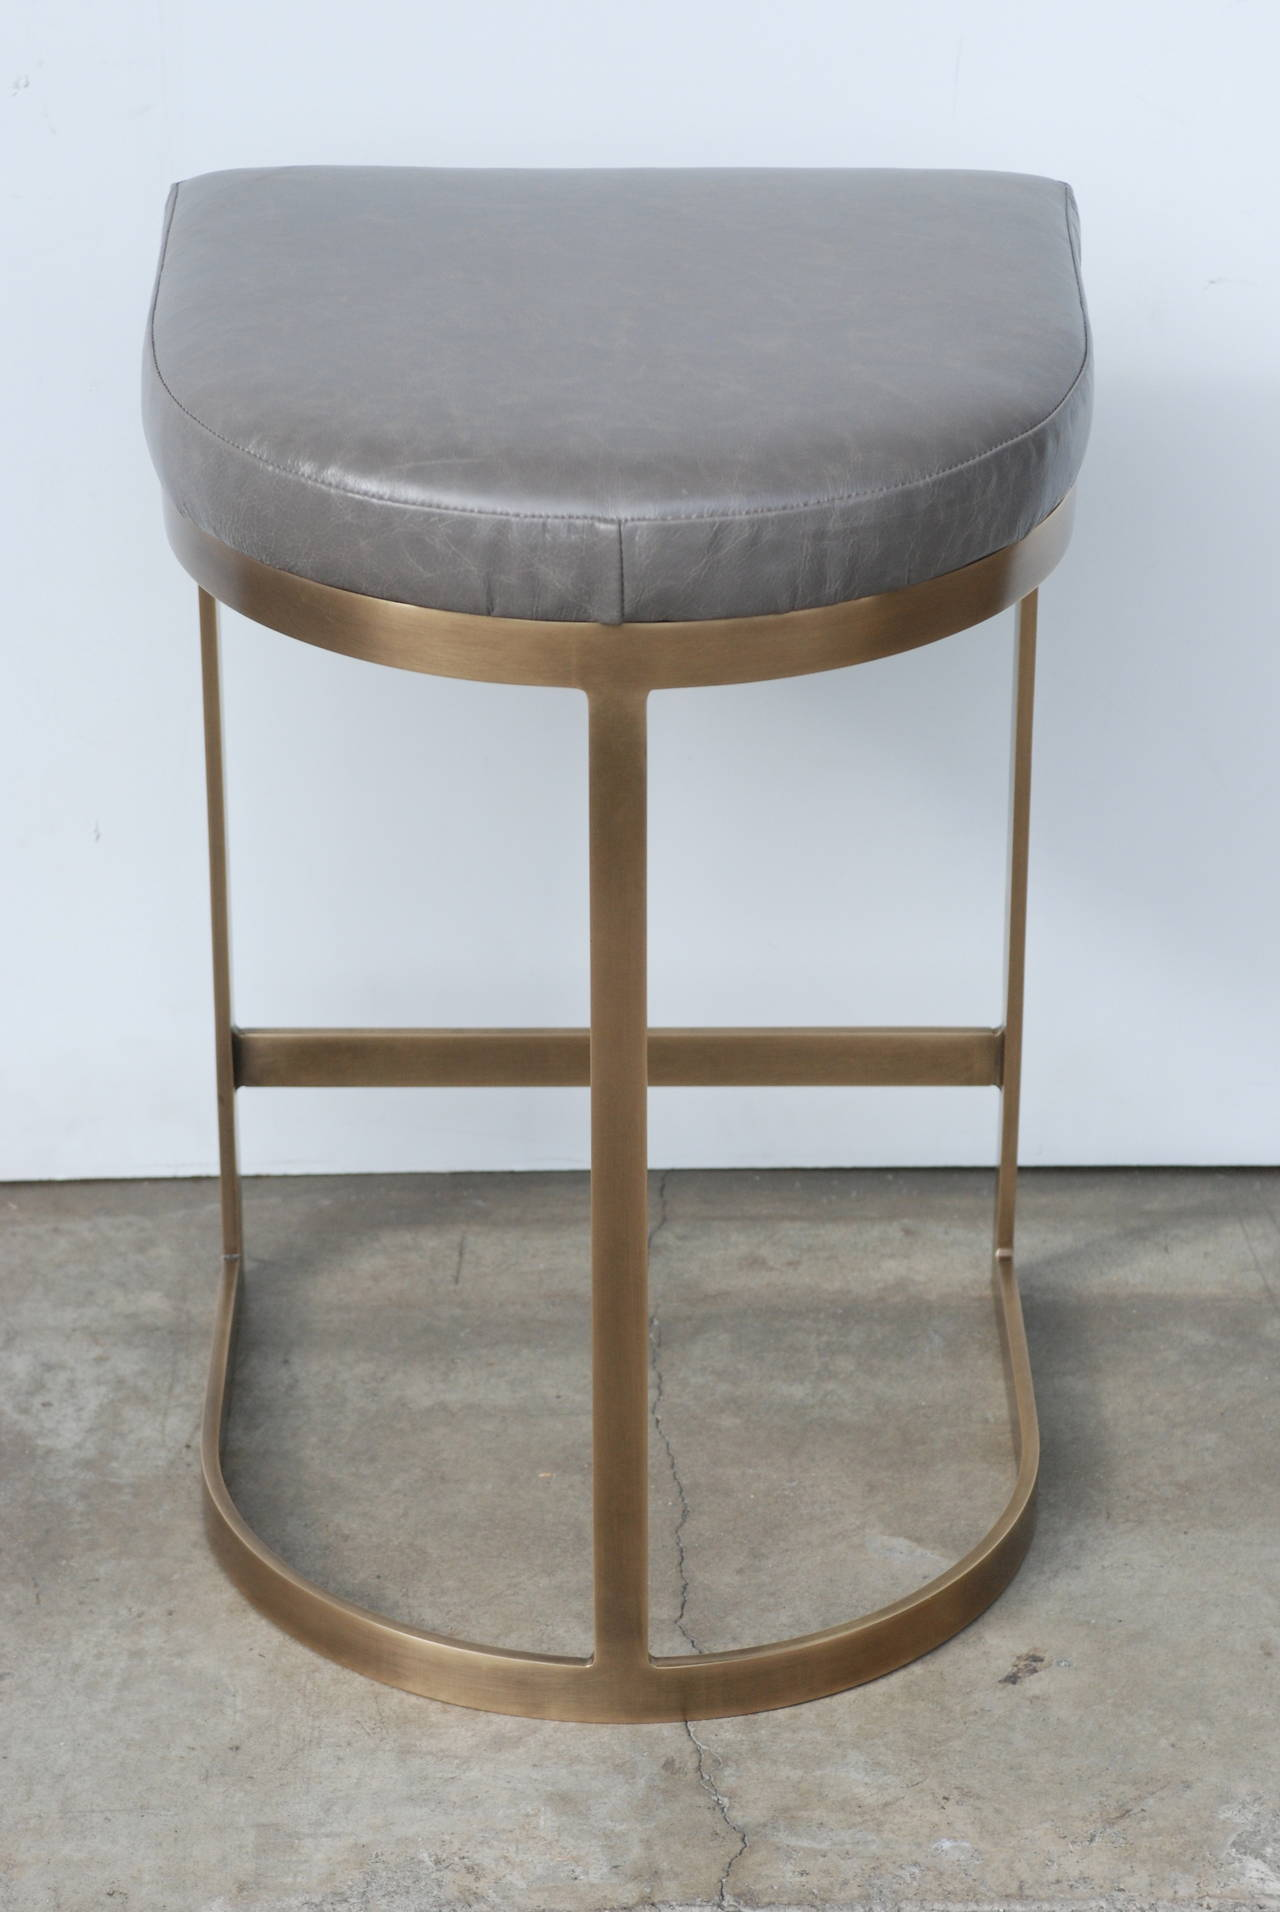 Milo Baughman Burnished Brass Bar Stools in Grey Leather For Sale 4